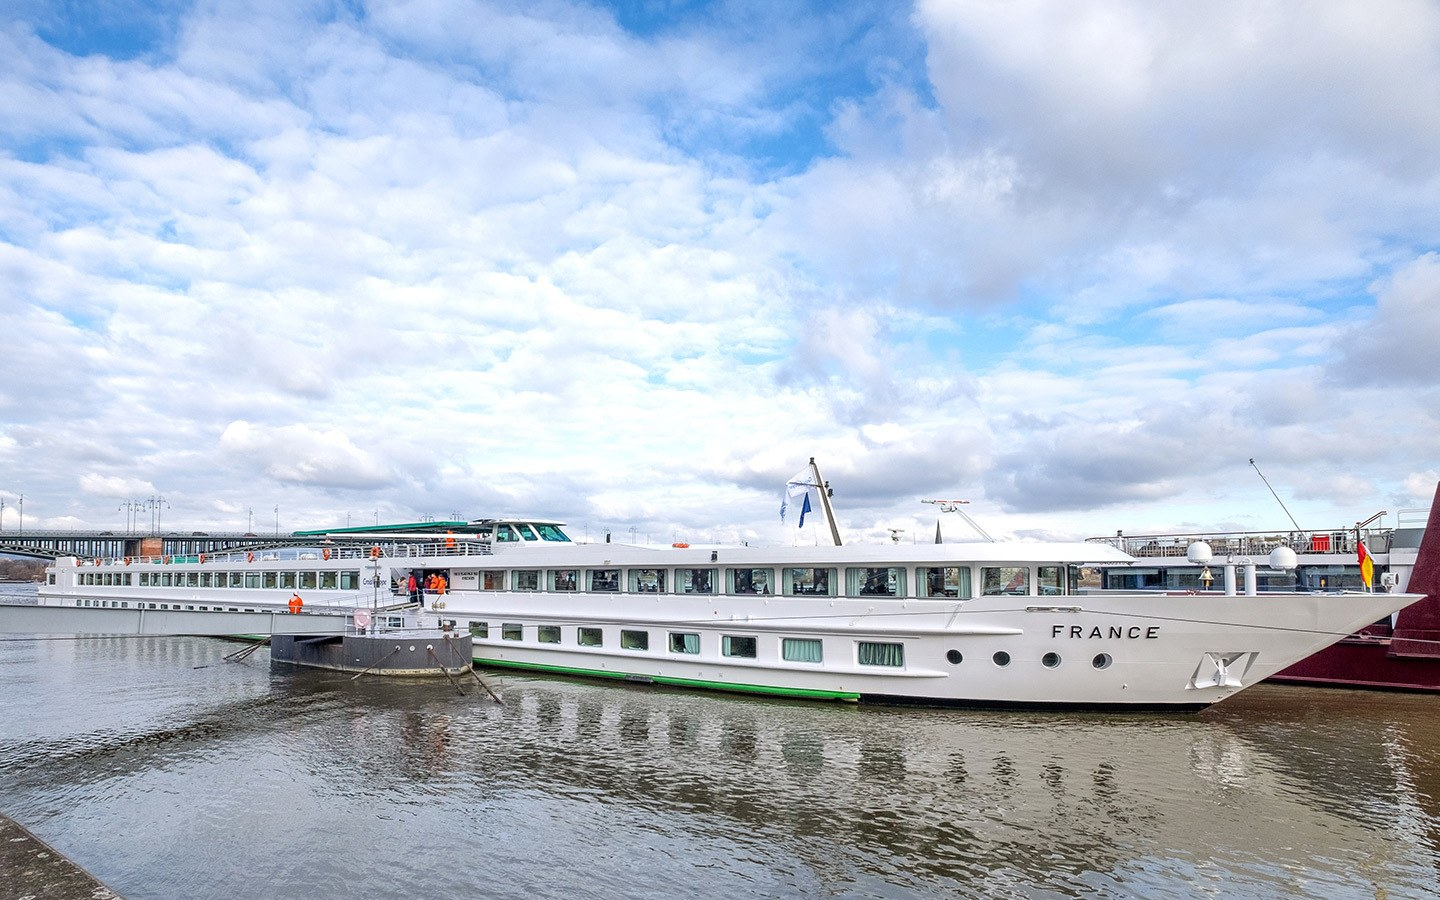 What's it like on a CroisiEurope river cruise?